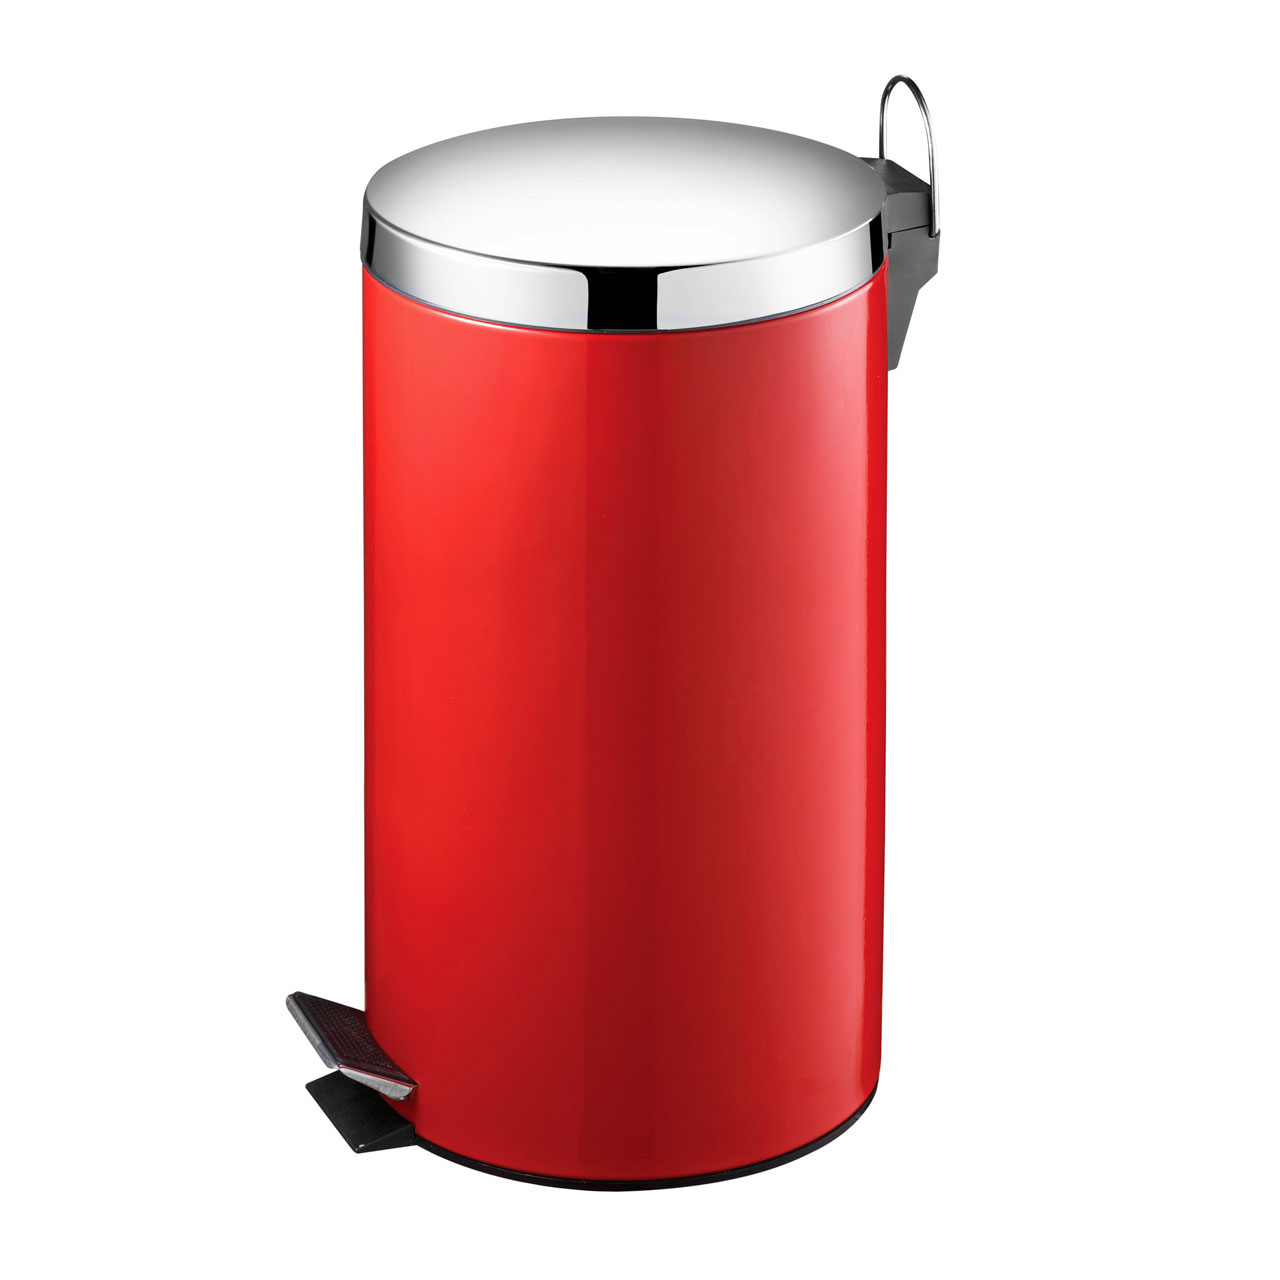 Bathroom John bathroom waste bin with lid bathroom storage john lewis, waste bin